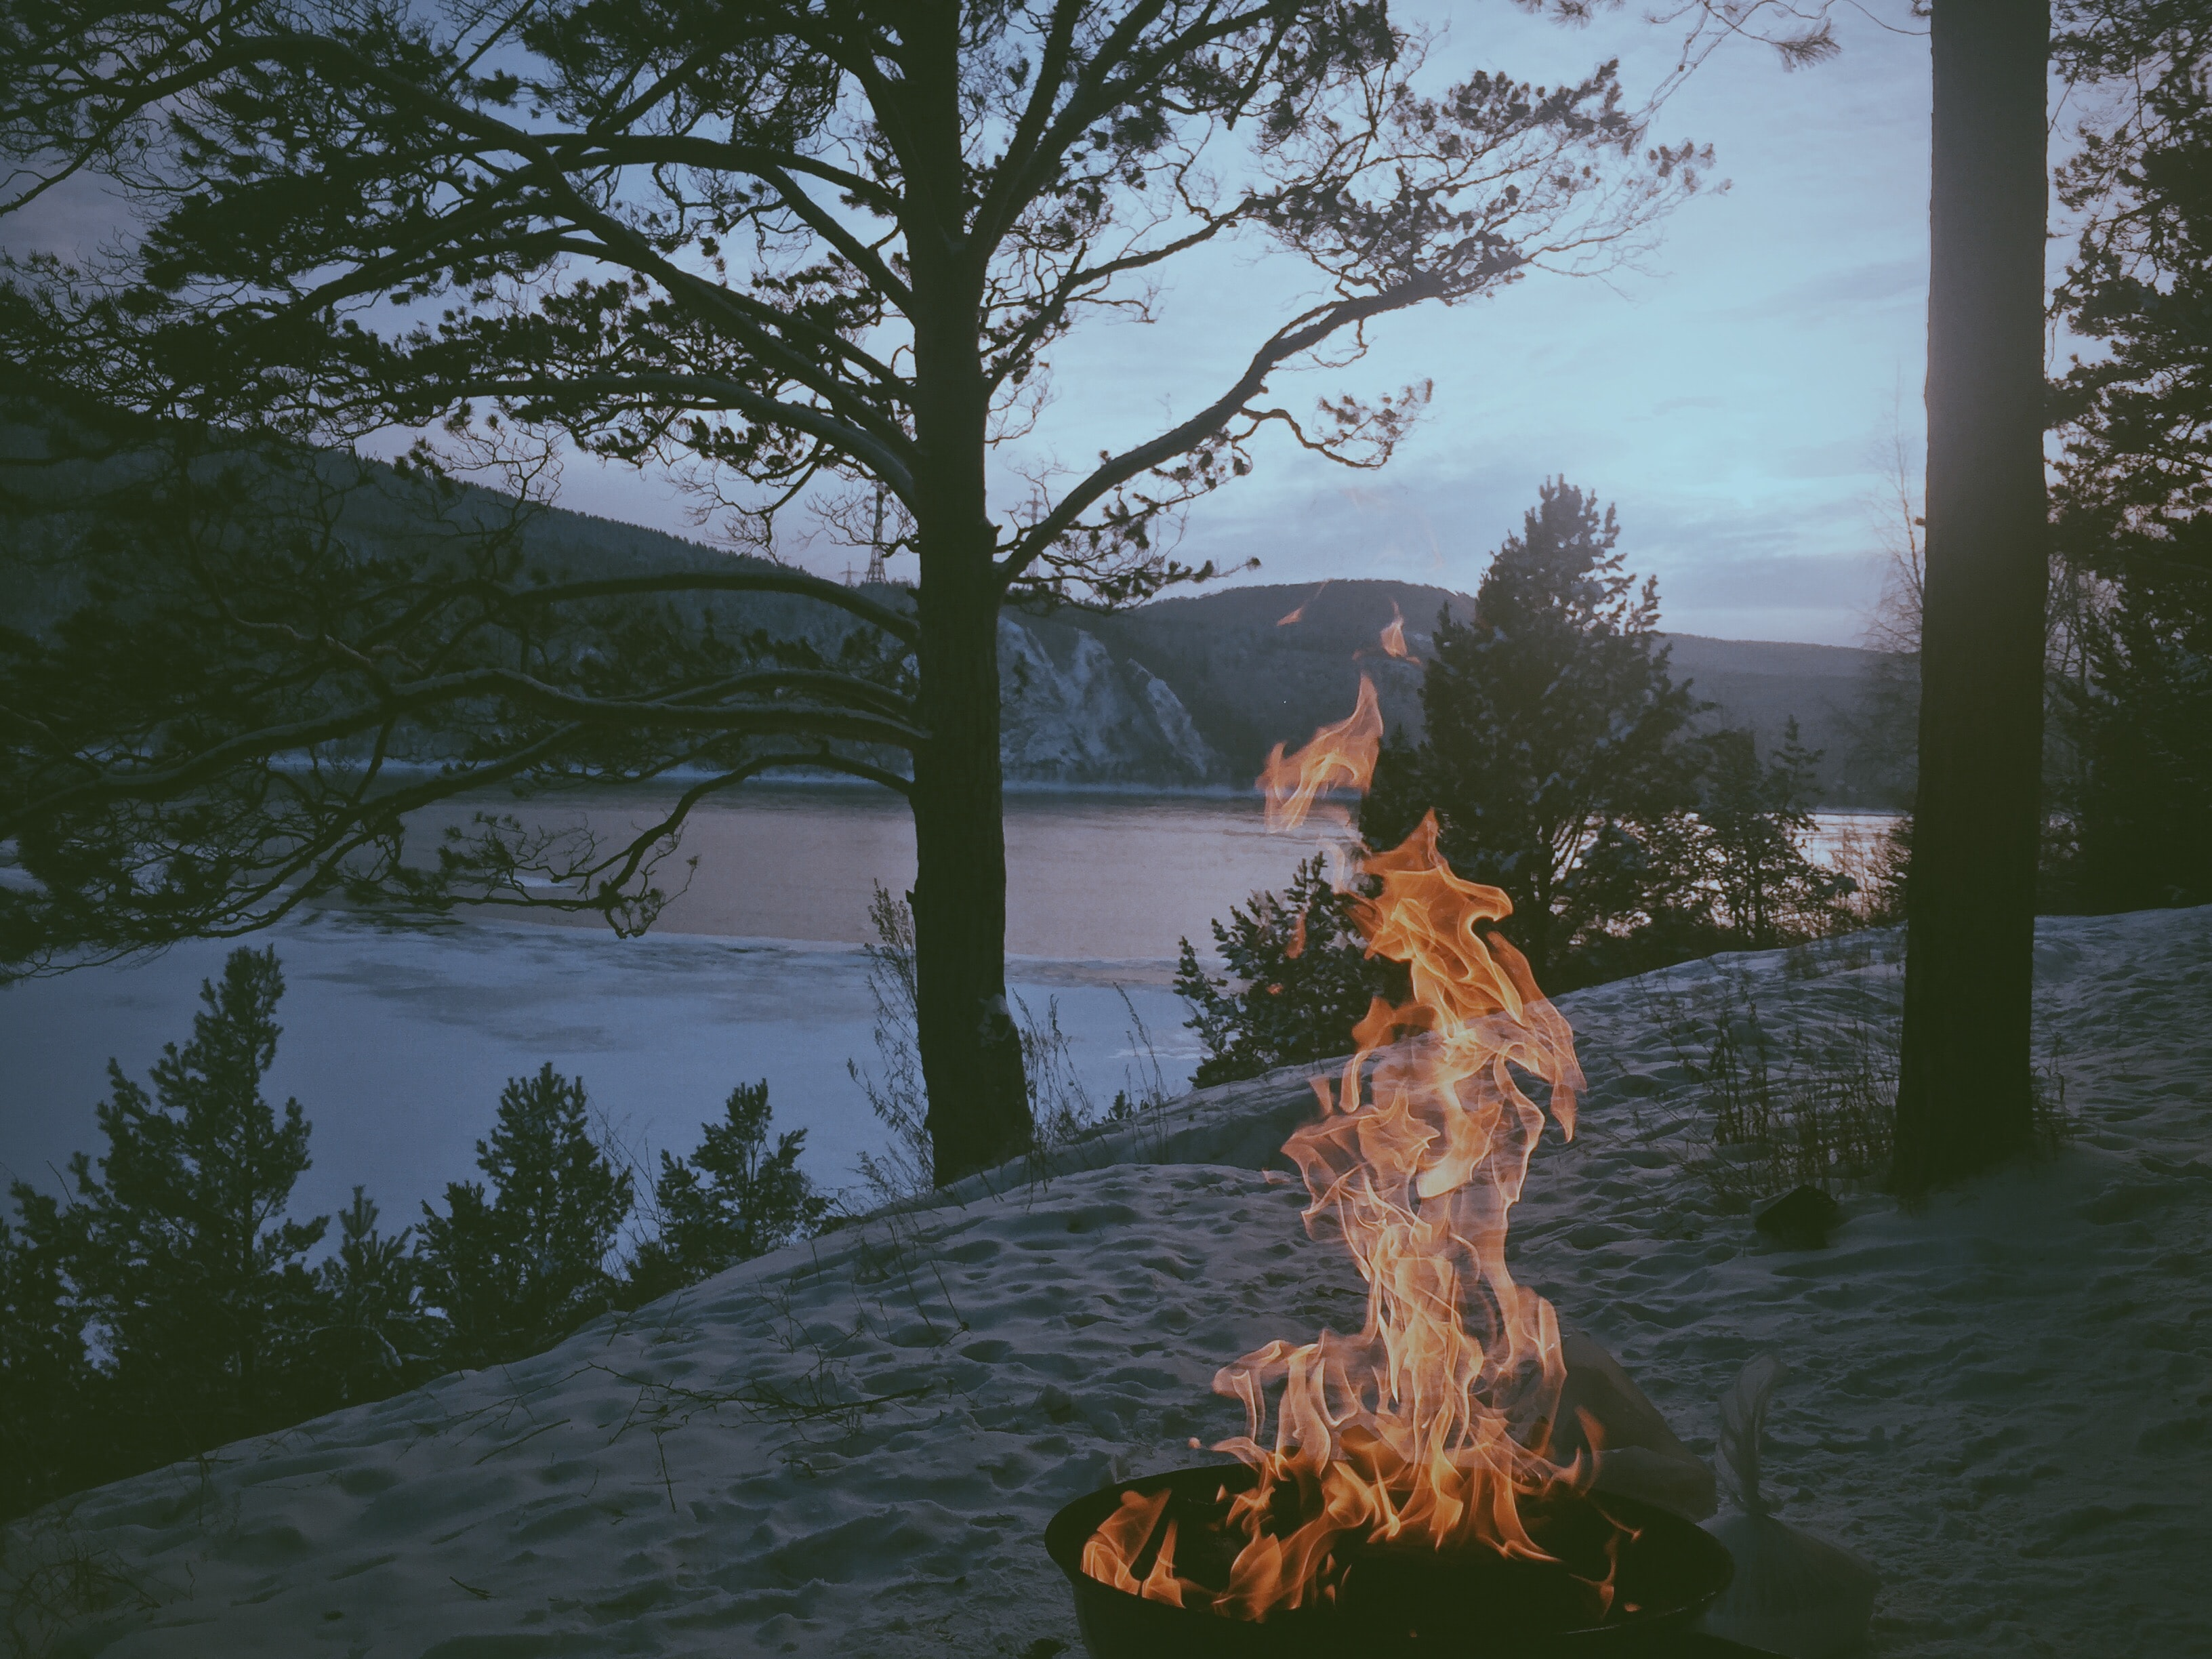 A campfire on a sandy beach near a half-frozen lake